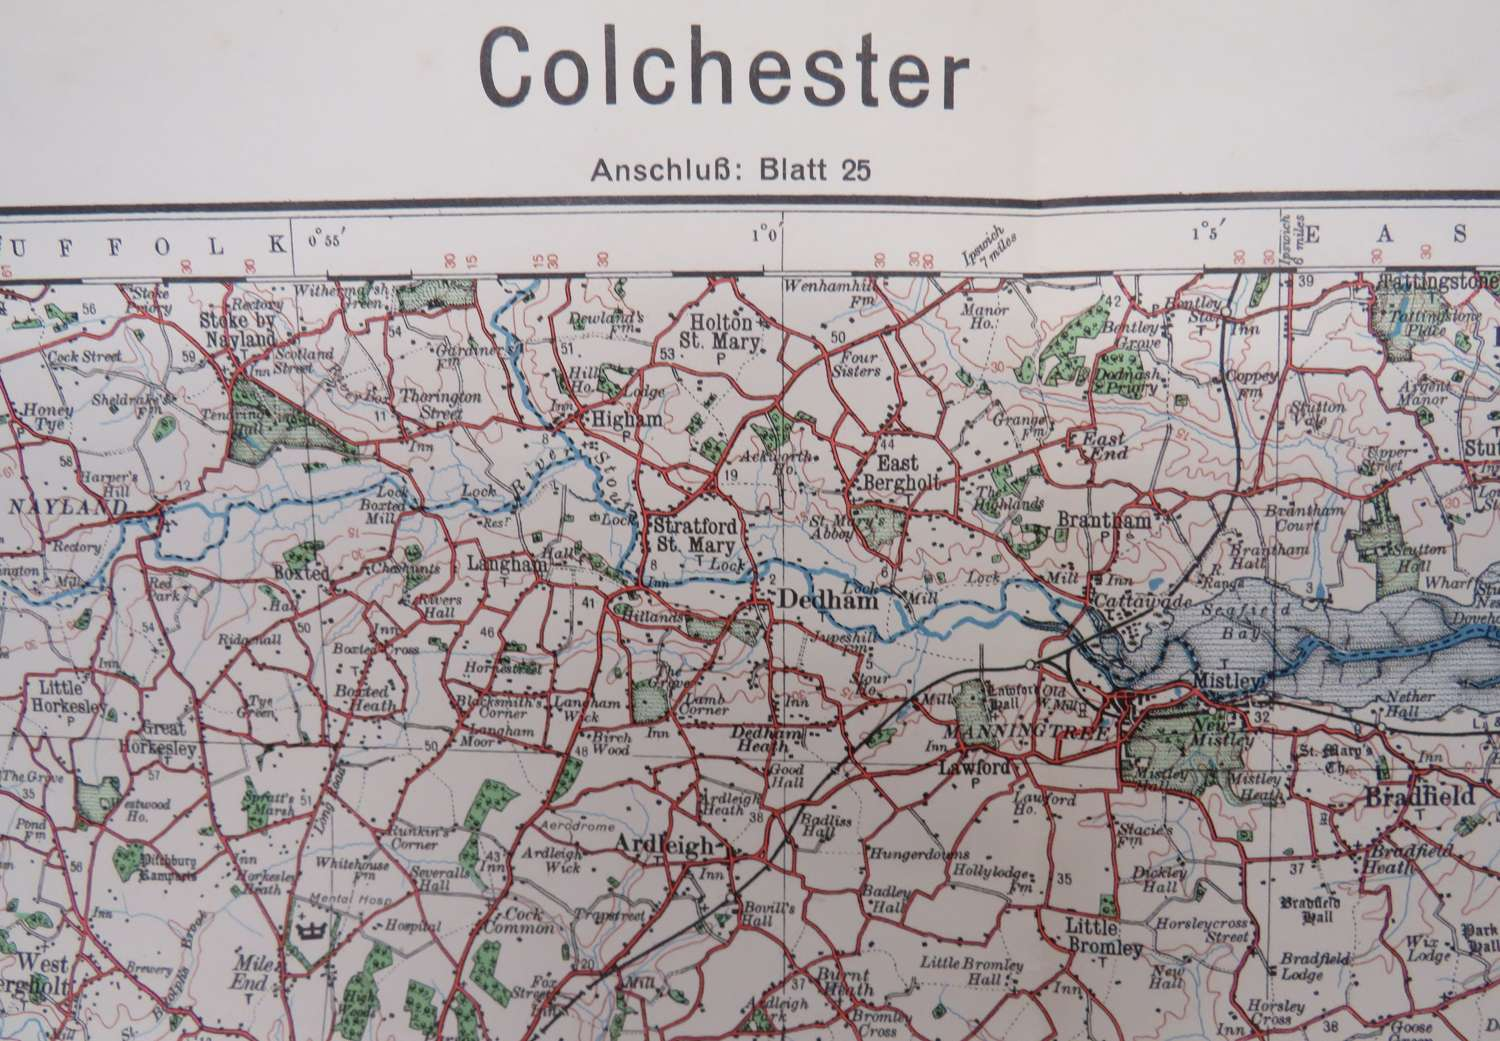 WW 2 German Invasion Map of Colchester